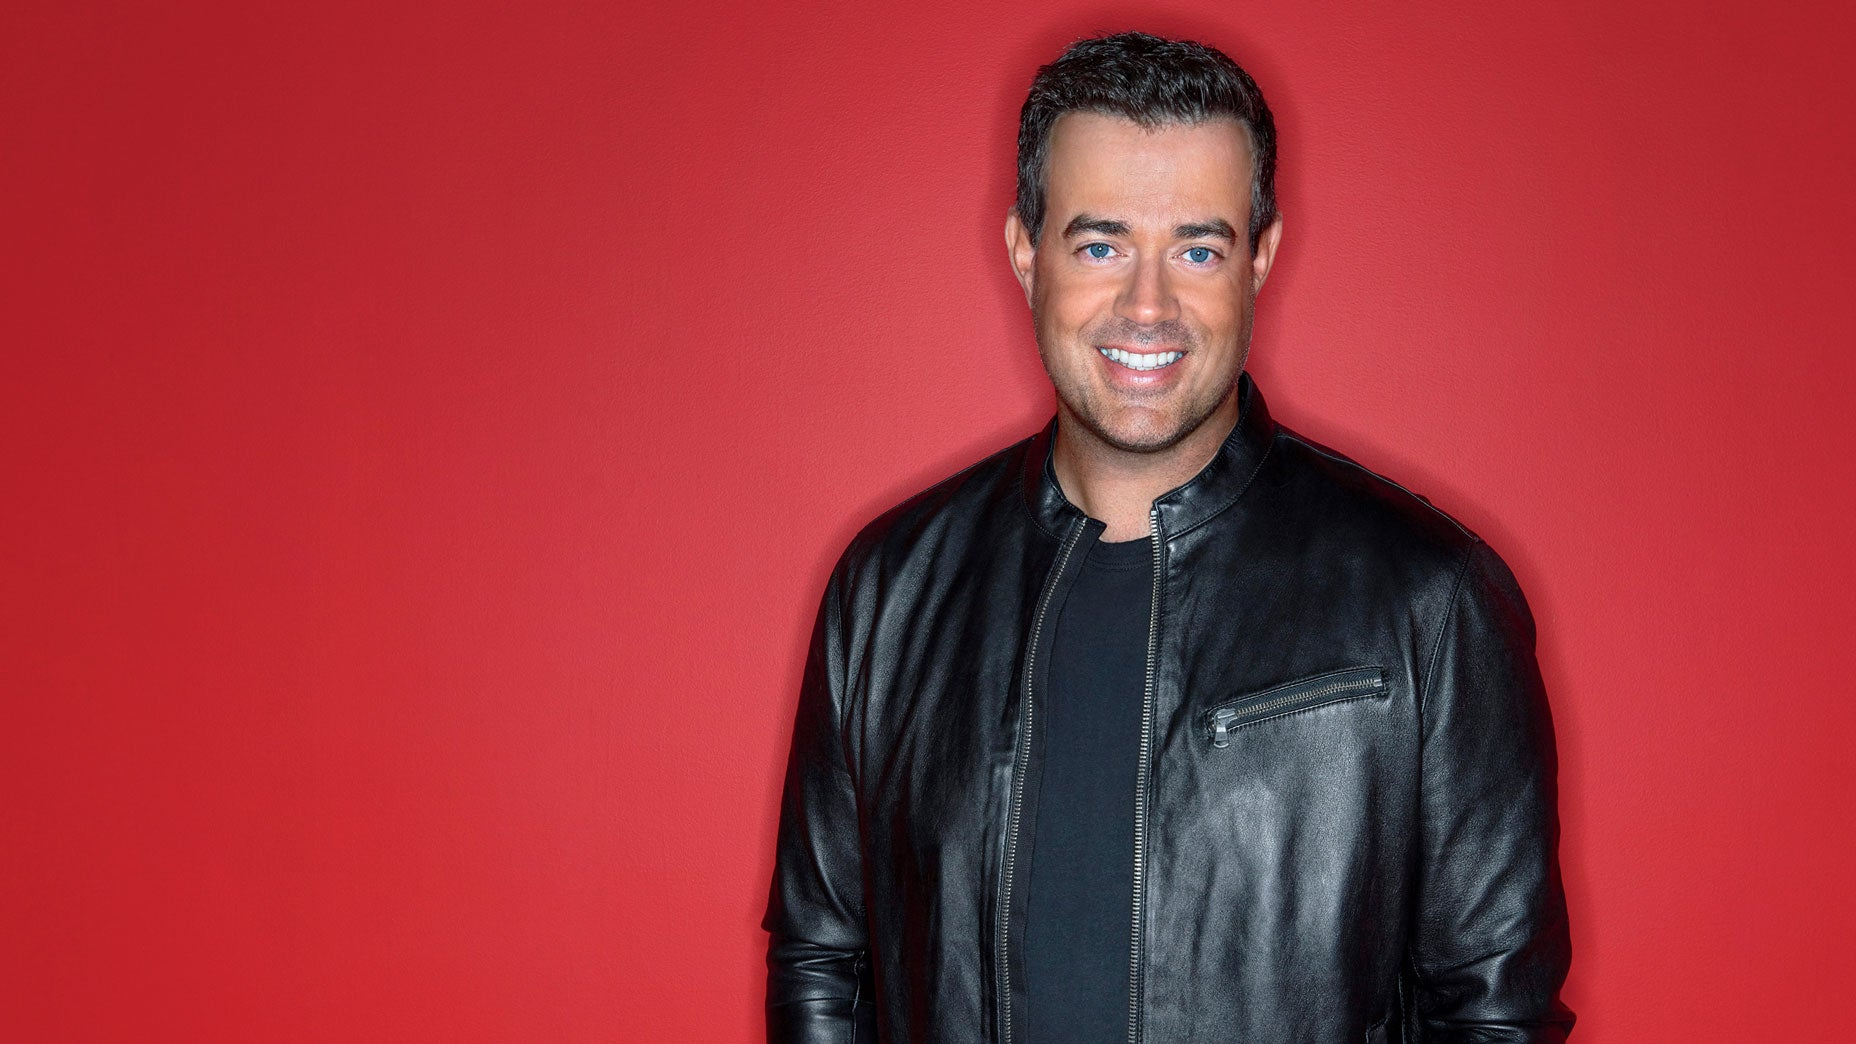 Carson Daly the golfer: Caddying at Riviera and winning at Pebble Beach